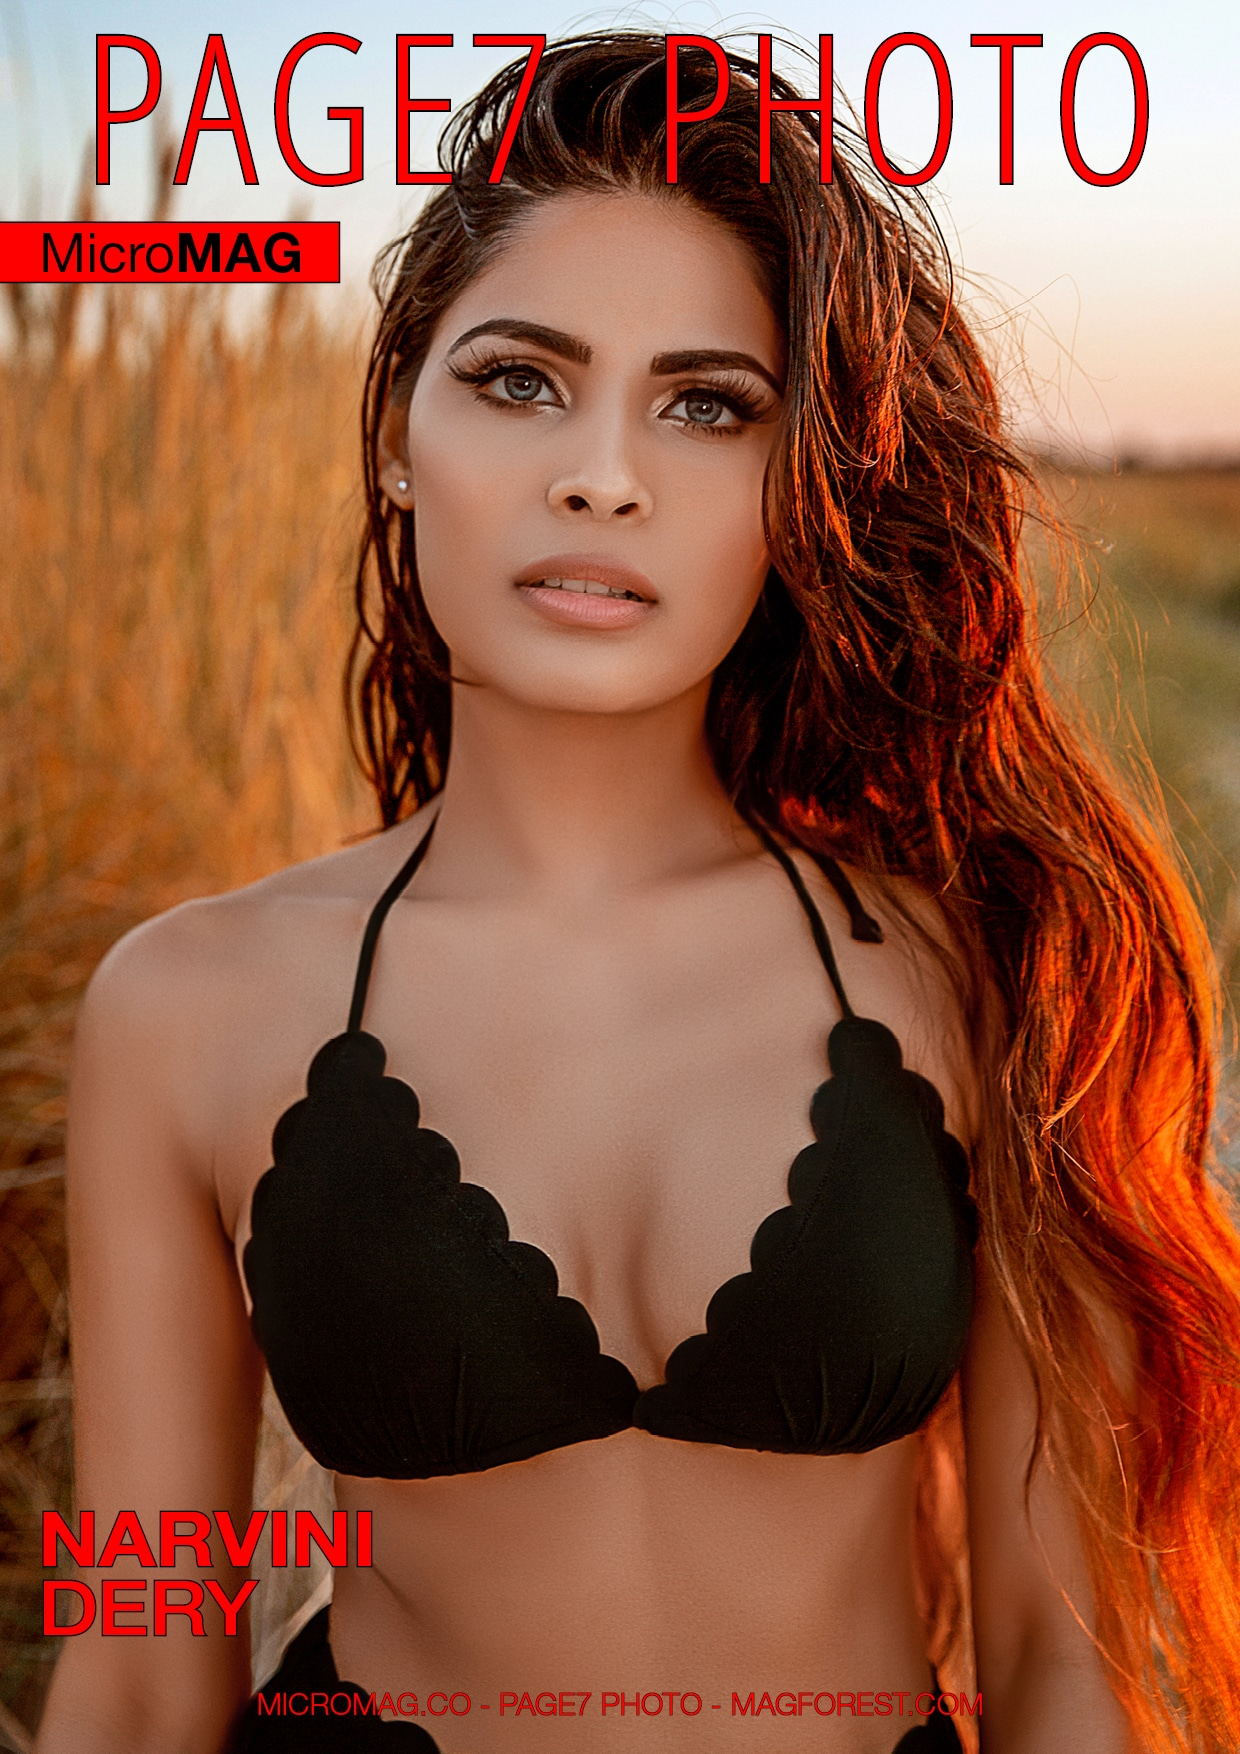 Swimsuit USA MicroMAG - Tara Morales - Issue 2 9